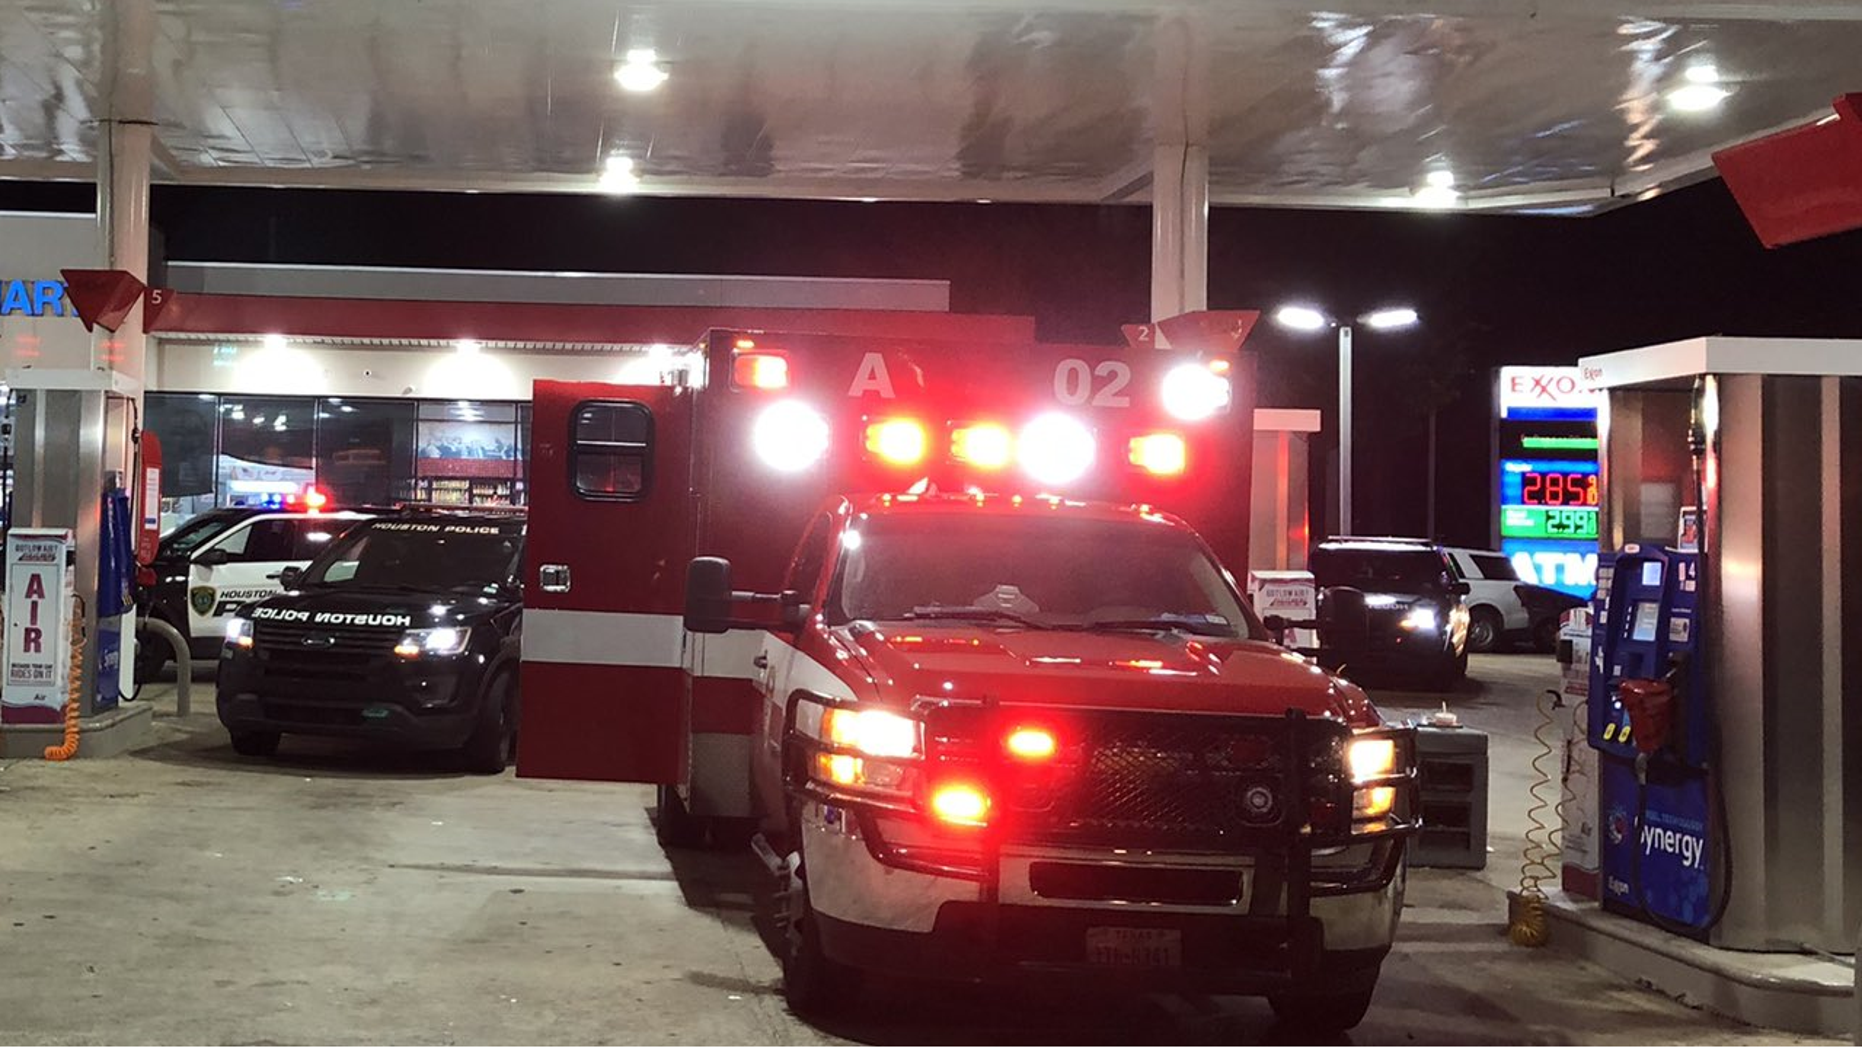 An ambulance in Houston, carrying a patient, was carjacked by an armed suspect